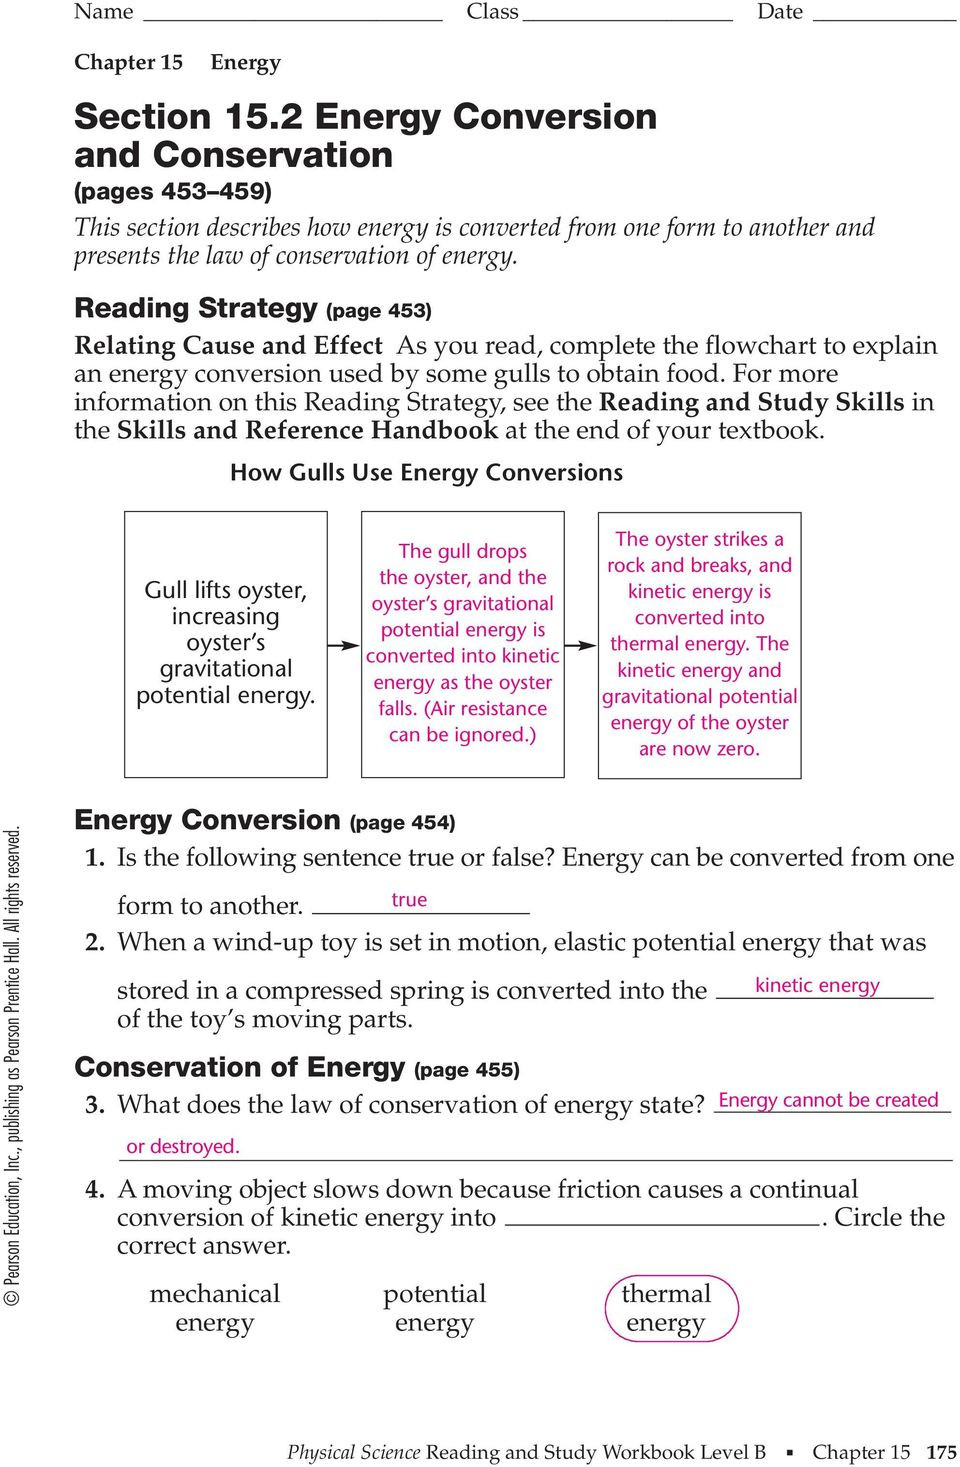 Energy Transformation Worksheet Pdf Energy Transformation Worksheet Pdf Energy Etfs